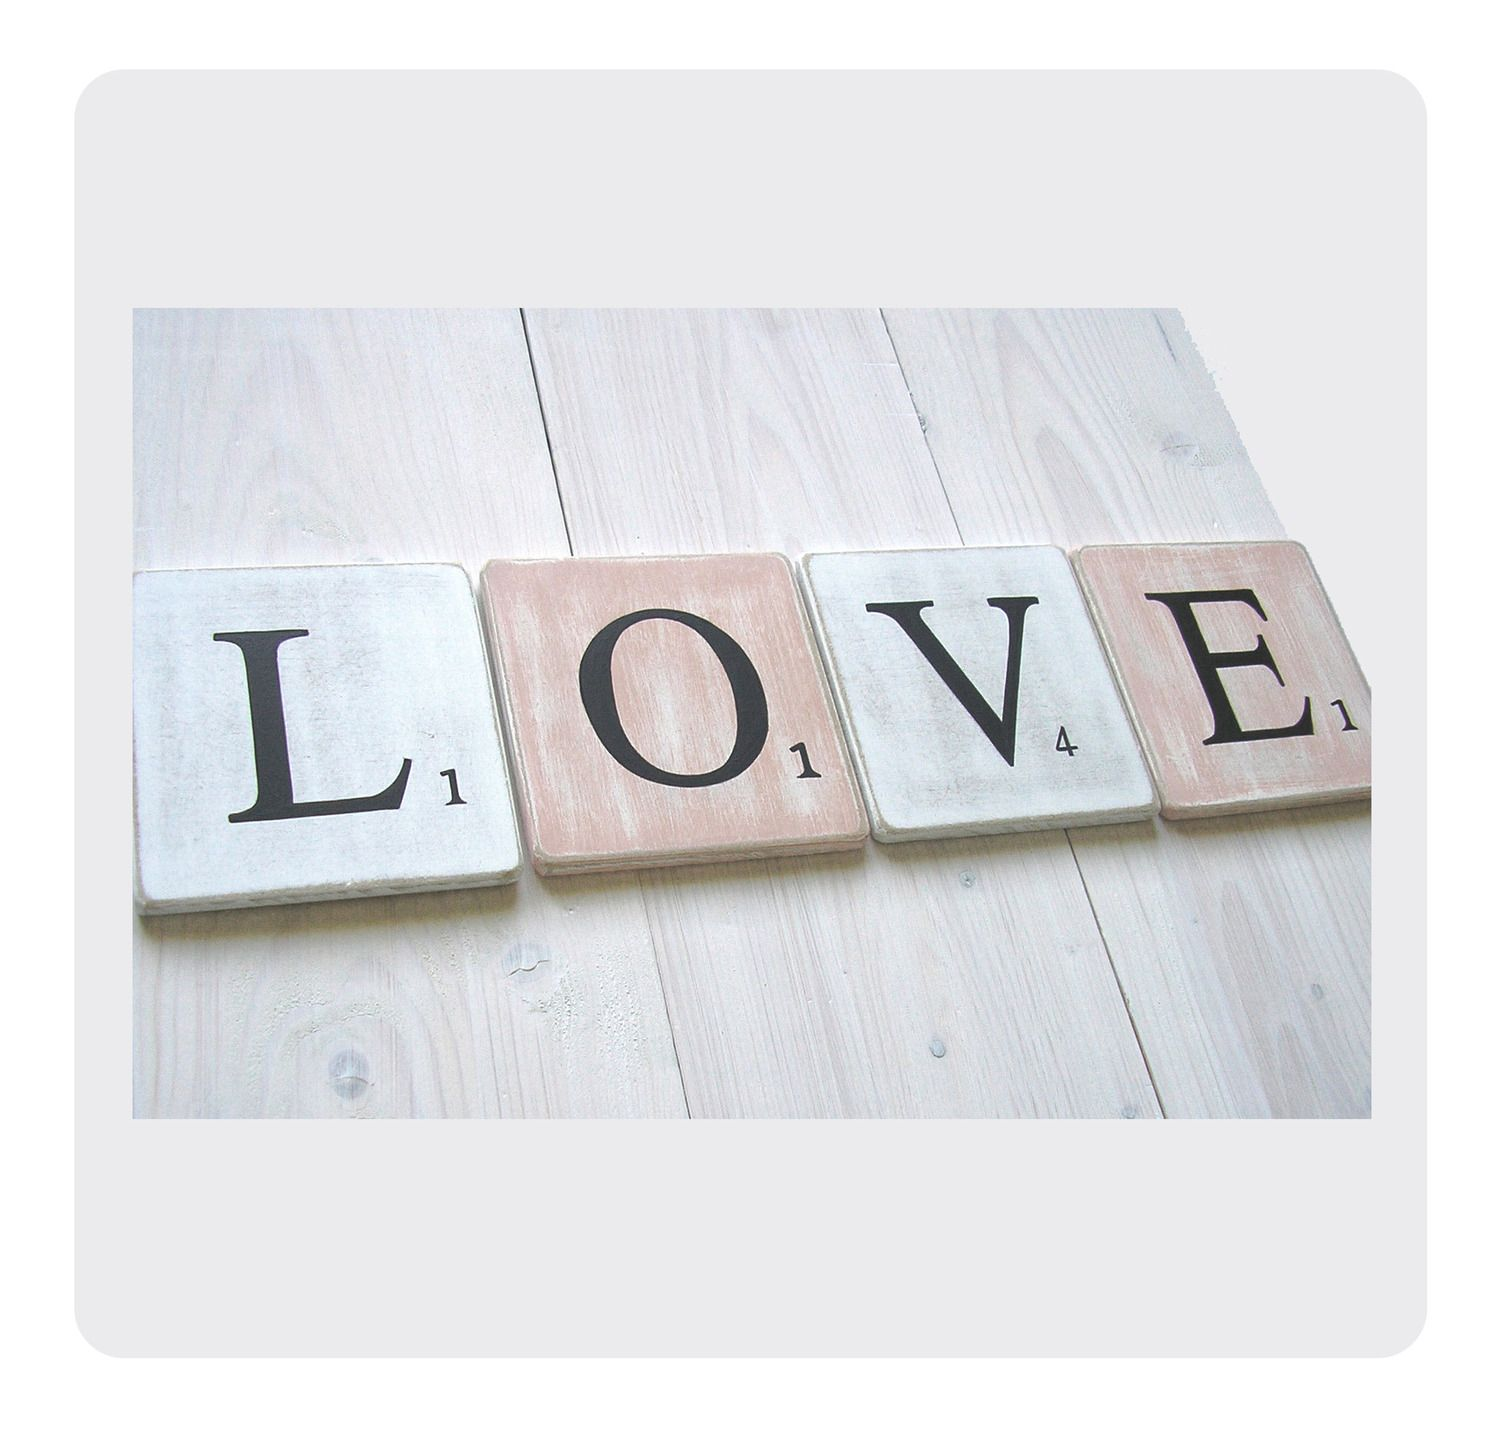 lettres scrabble la commande en bois patin format 10 x 10 cm 6 la lettre d corations. Black Bedroom Furniture Sets. Home Design Ideas